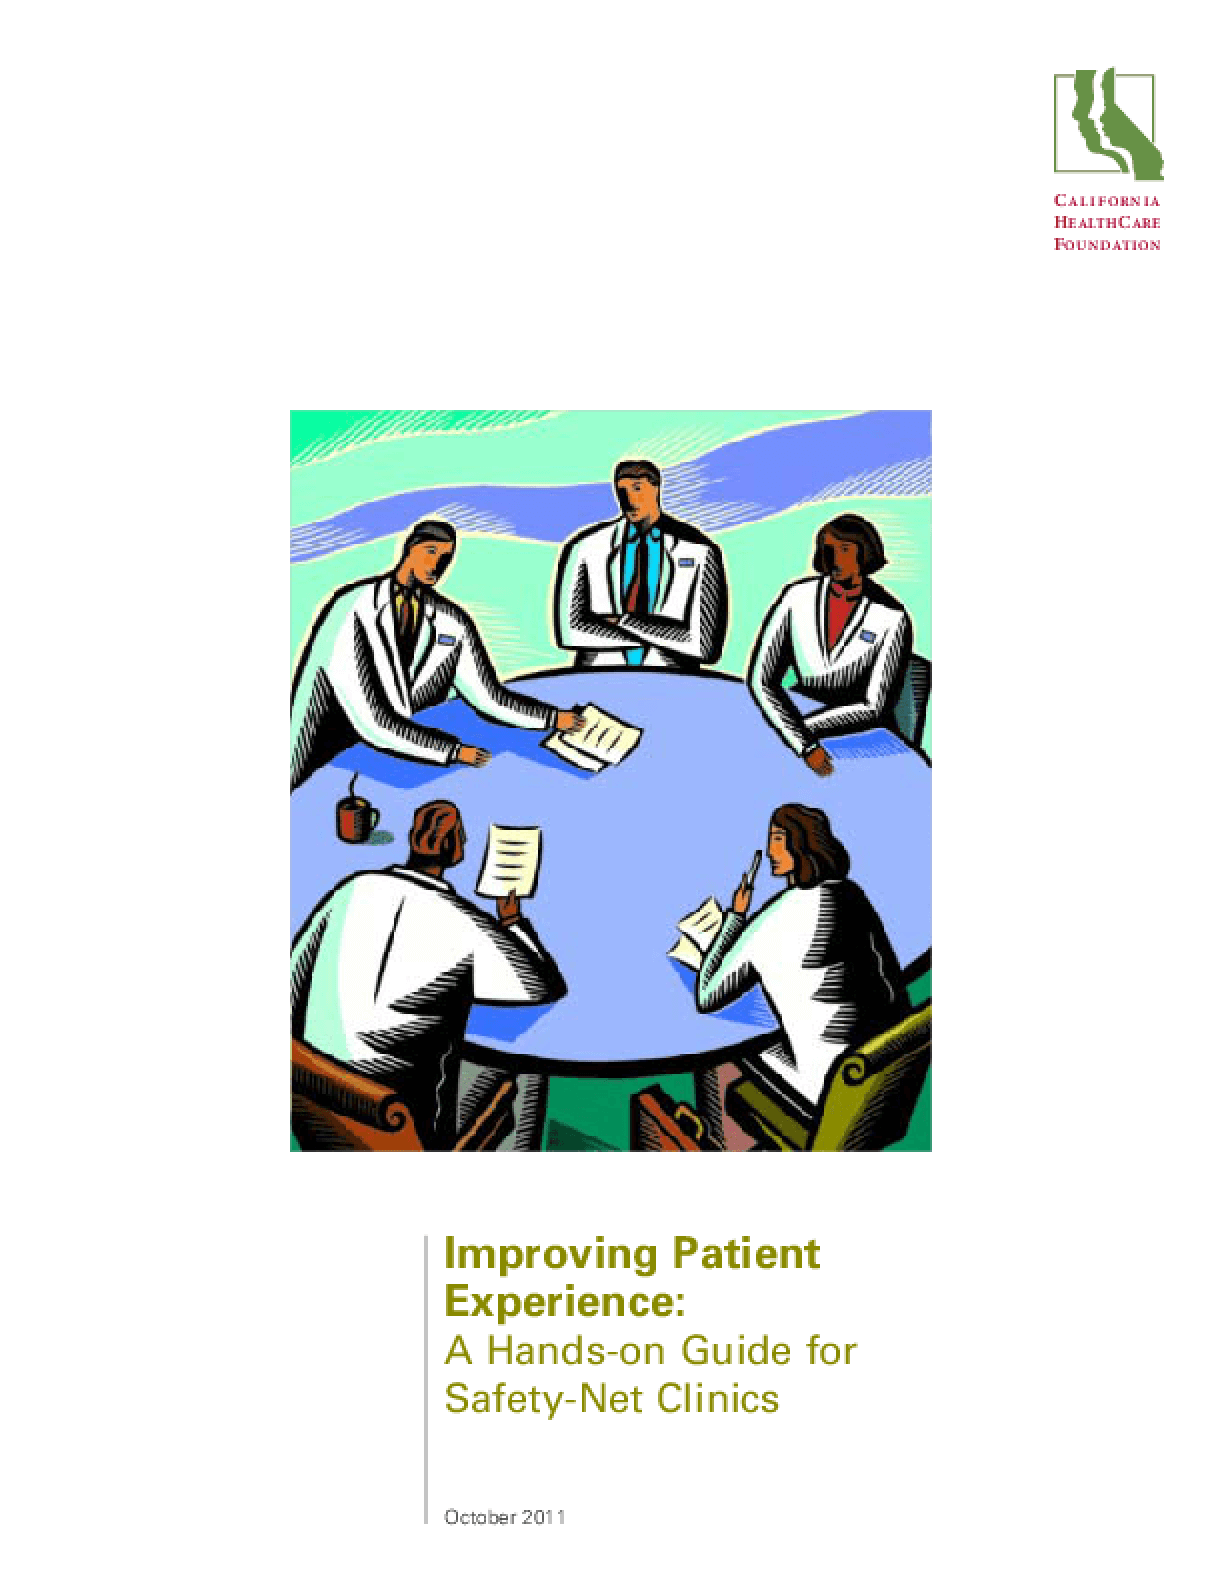 Improving Patient Experience: A Hands-on-Guide for Safety-Net Clinics